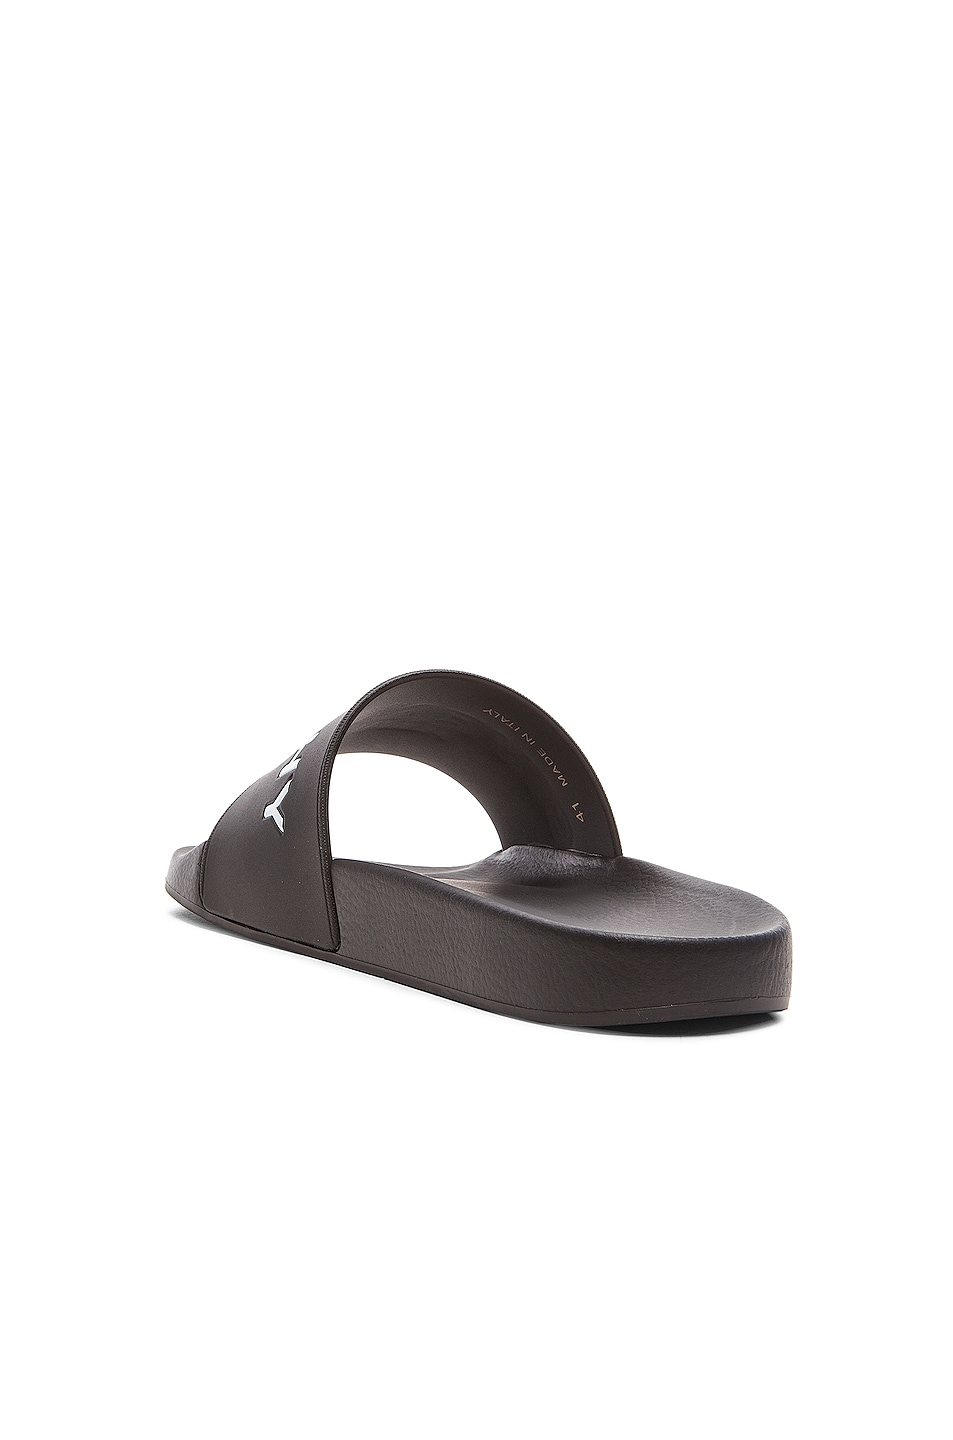 Polyurethane Slide Sandals in White. - size 41 (also in 39,40,42,43,44,45)Givenchy